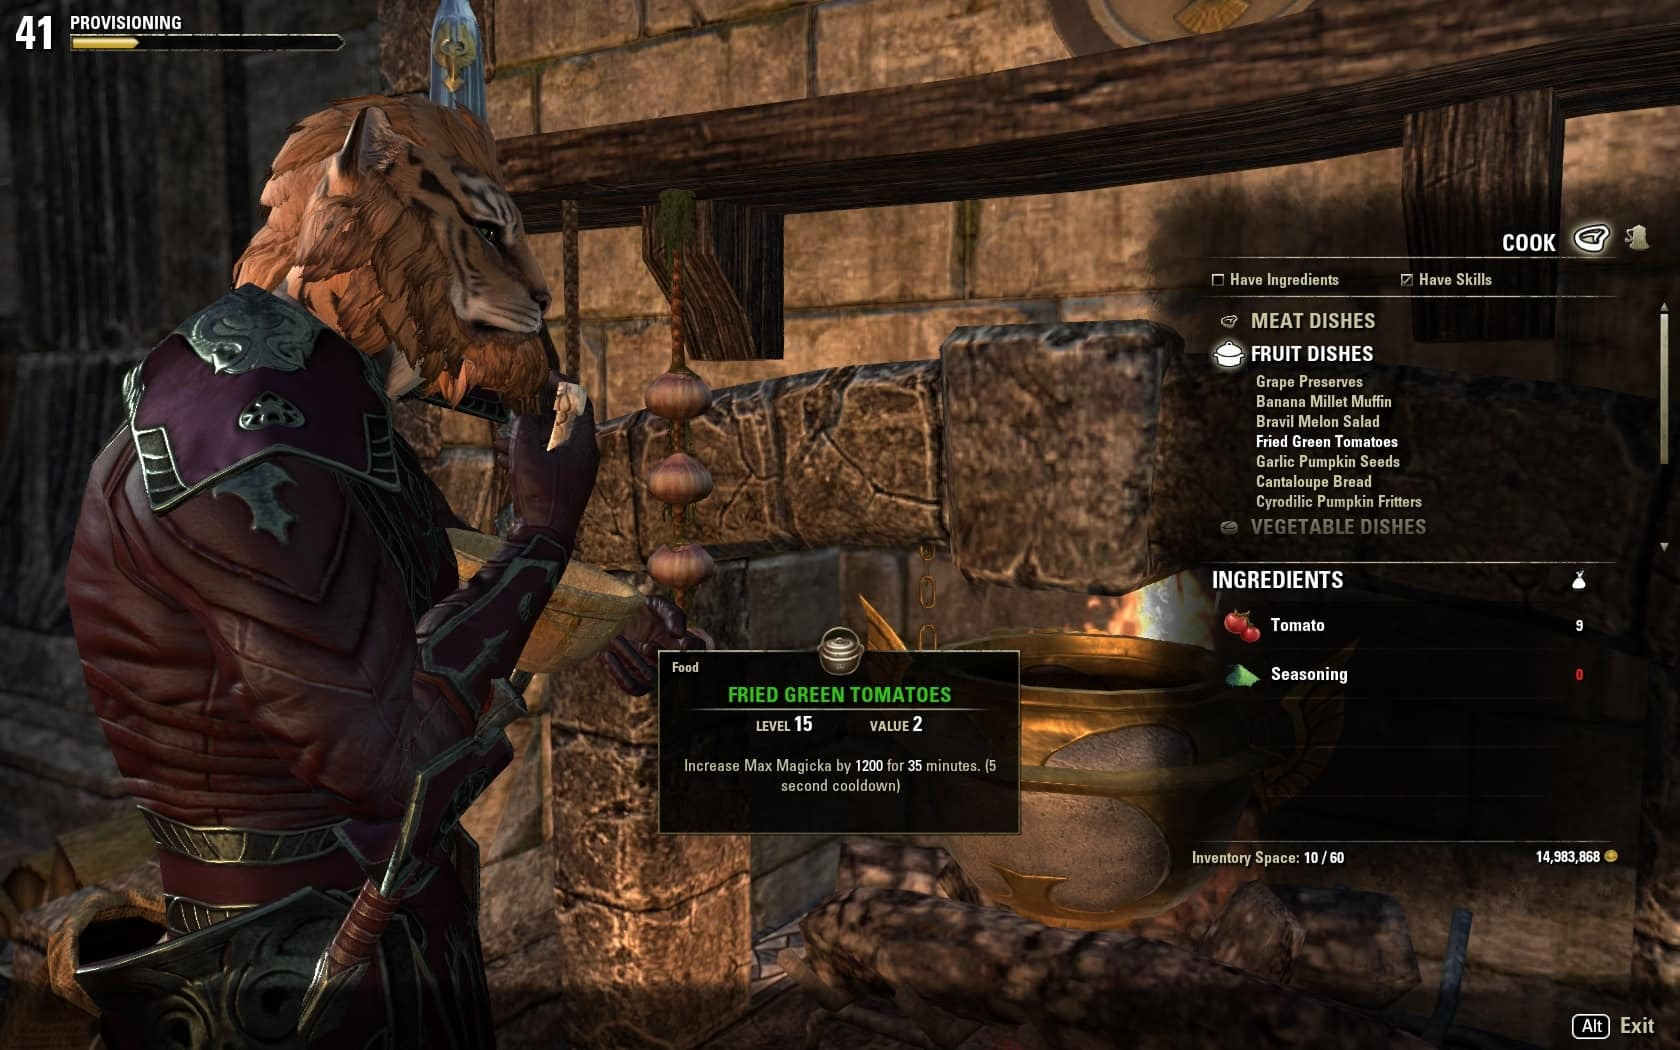 Update 6 guide provisioning the elder scrolls online there are other ways to obtain ingredients too you can get them through cleaning and gutting fish youve caught as a reward for crafting writs forumfinder Gallery